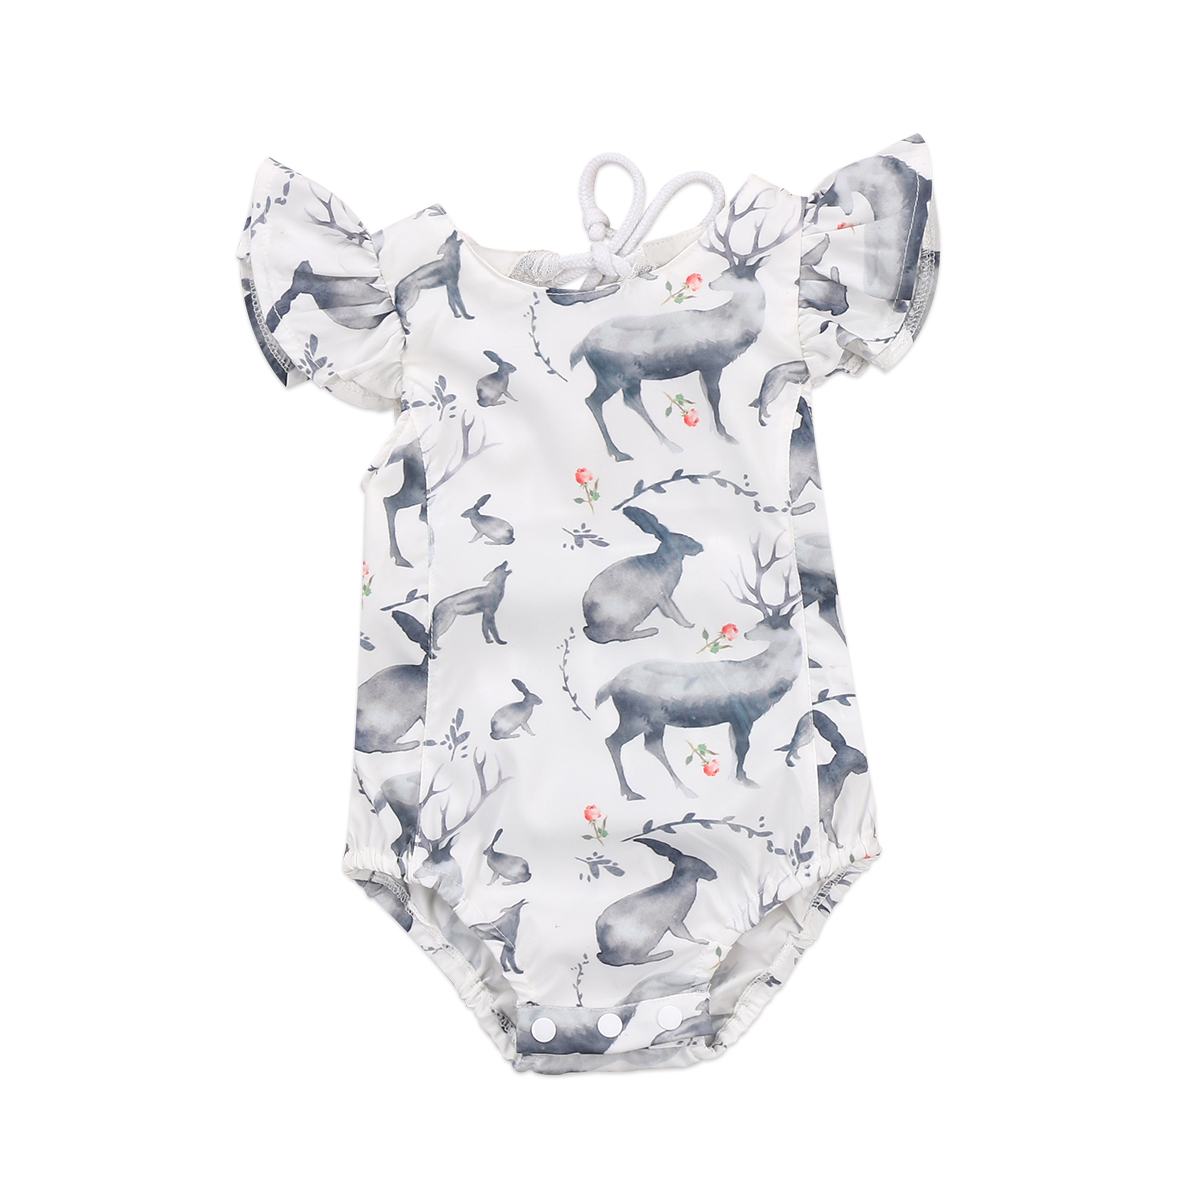 Newborn Baby Girl Clothing Deer Ruffles Romper Sleeveless Backless Jumpsuit Outfits Sunsuit 0-24M 0 24m floral baby girl clothes set 2017 summer sleeveless ruffles crop tops baby bloomers shorts 2pcs outfits children sunsuit